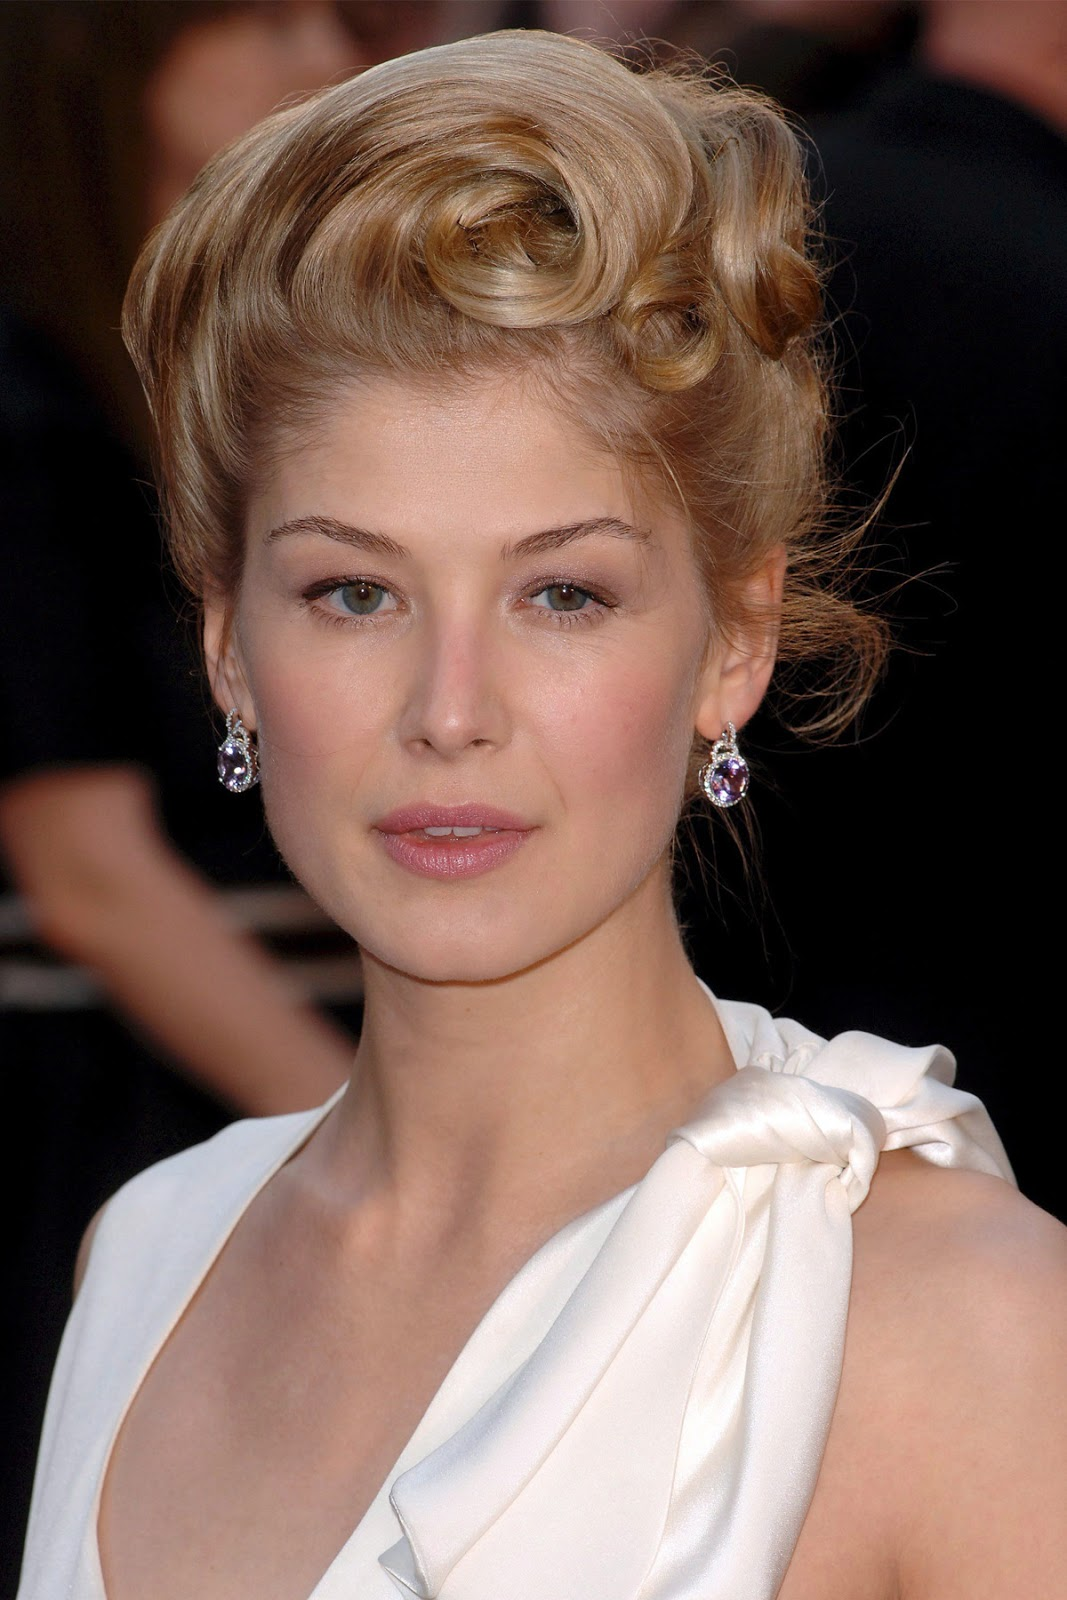 rosamund pike hd wallpapers high definition free